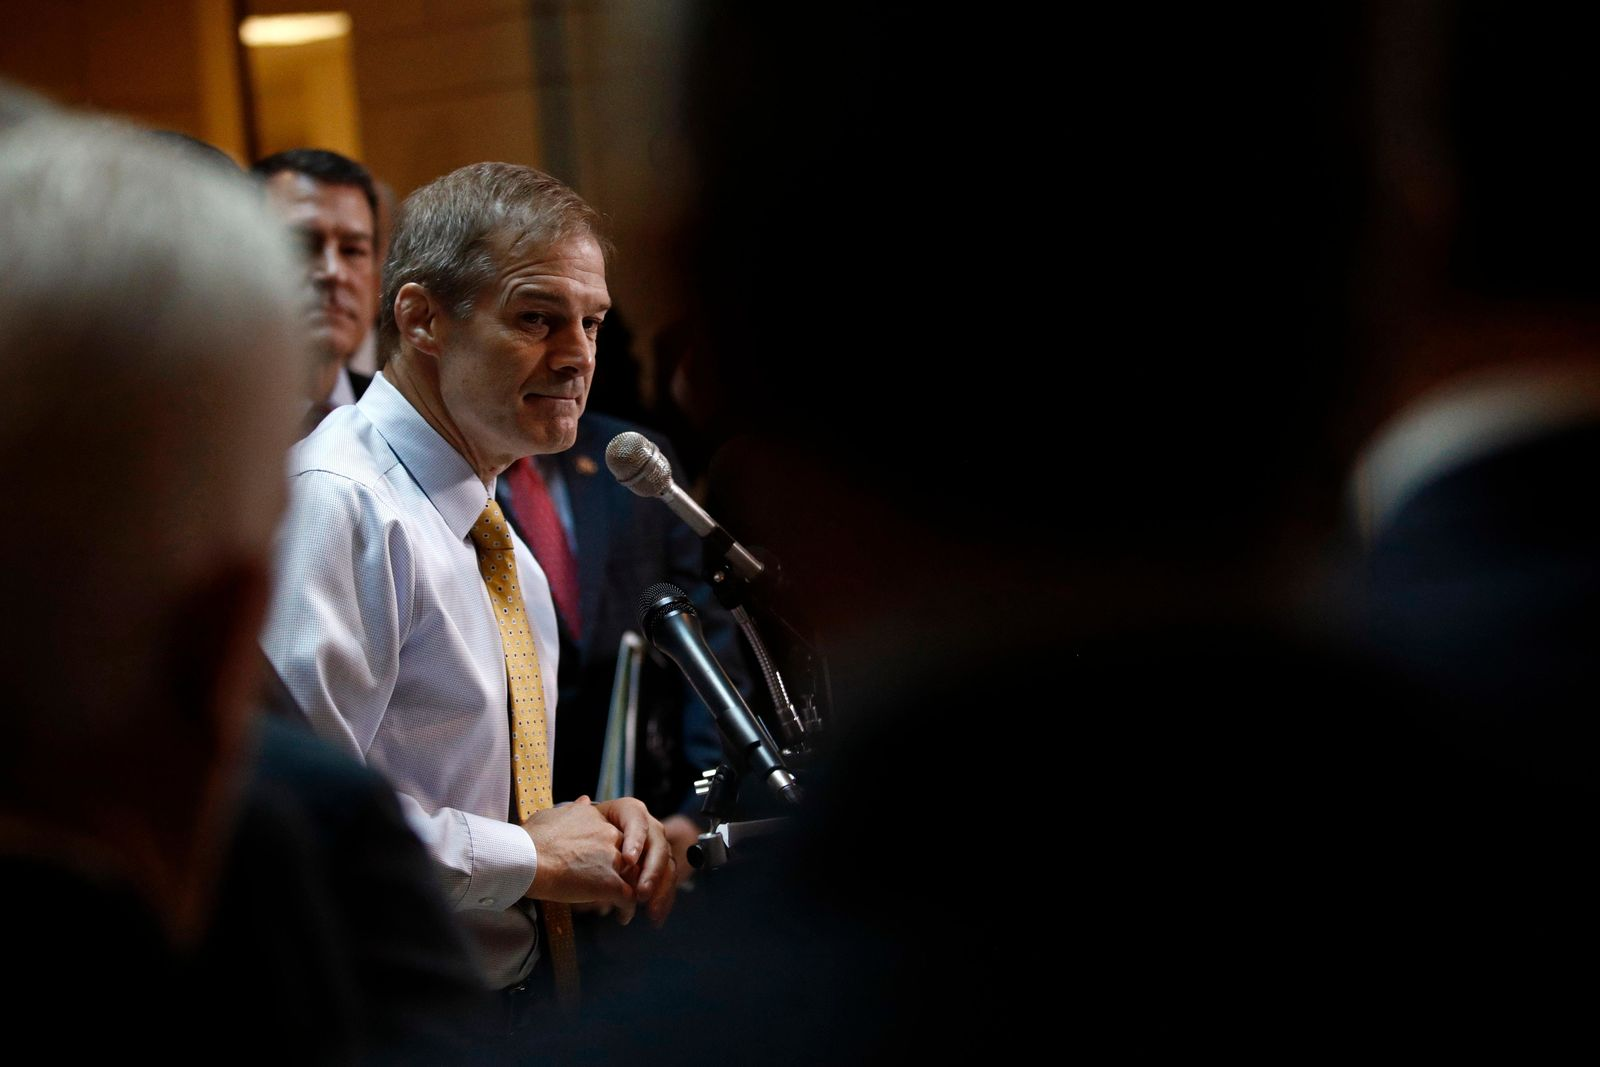 Rep. Jim Jordan, R-Ohio, speaks at a news conference in front of House Republicans after Deputy Assistant Secretary of Defense Laura Cooper arrived for a closed door meeting to testify as part of the House impeachment inquiry into President Donald Trump, Wednesday, Oct. 23, 2019, on Capitol Hill in Washington. (AP Photo/Patrick Semansky)